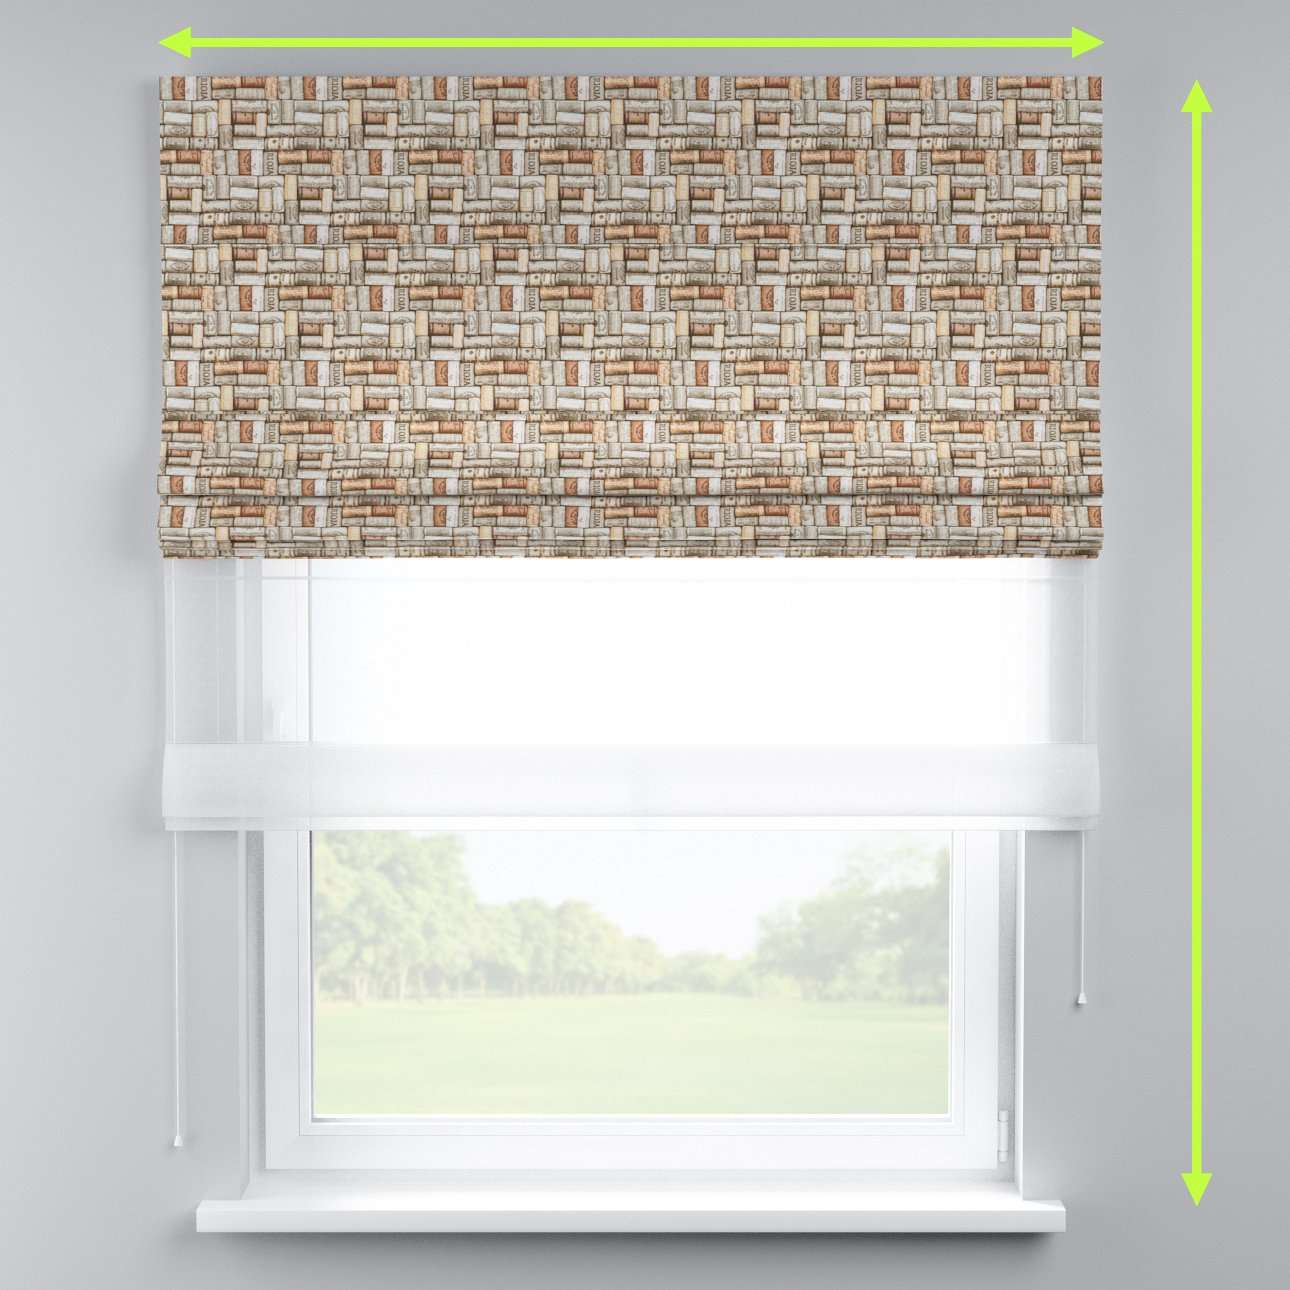 Voile and fabric roman blind (DUO II) in collection Marina, fabric: 140-13